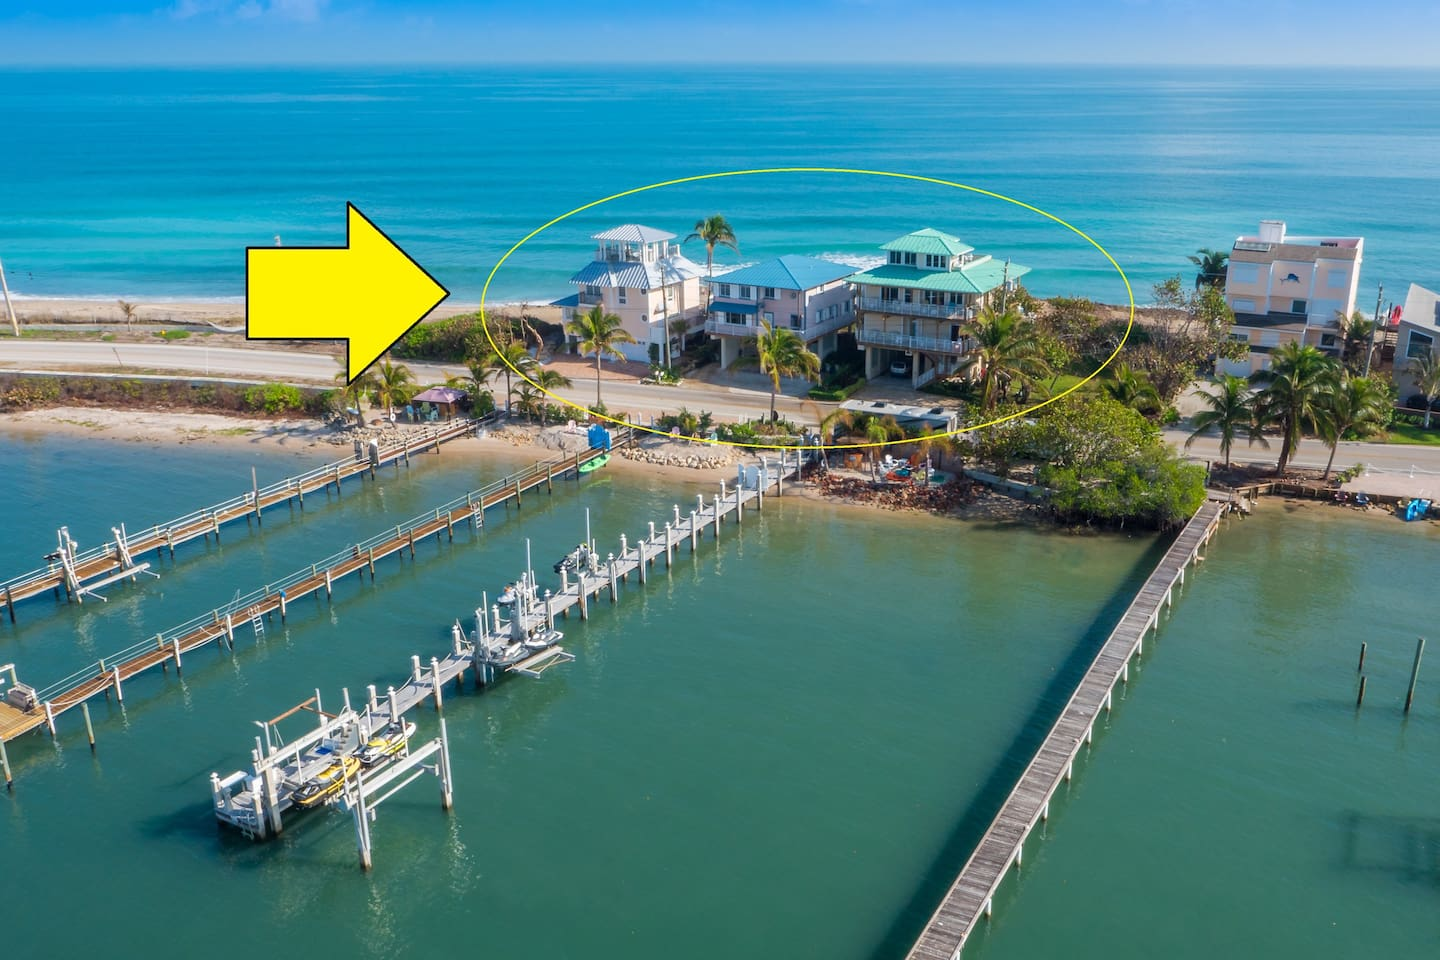 """The Ocean-to-River Beach-House Resort combines three beach houses -- """"As Good as it Gets"""" (left), """"Heaven Can't Wait"""" (middle) and """"Carpe Diem"""" (right) -- into one easy-to-book, price-discounted listing.  For details, photos and reviews of each  house, please visit the home's individual AirBnB listing."""